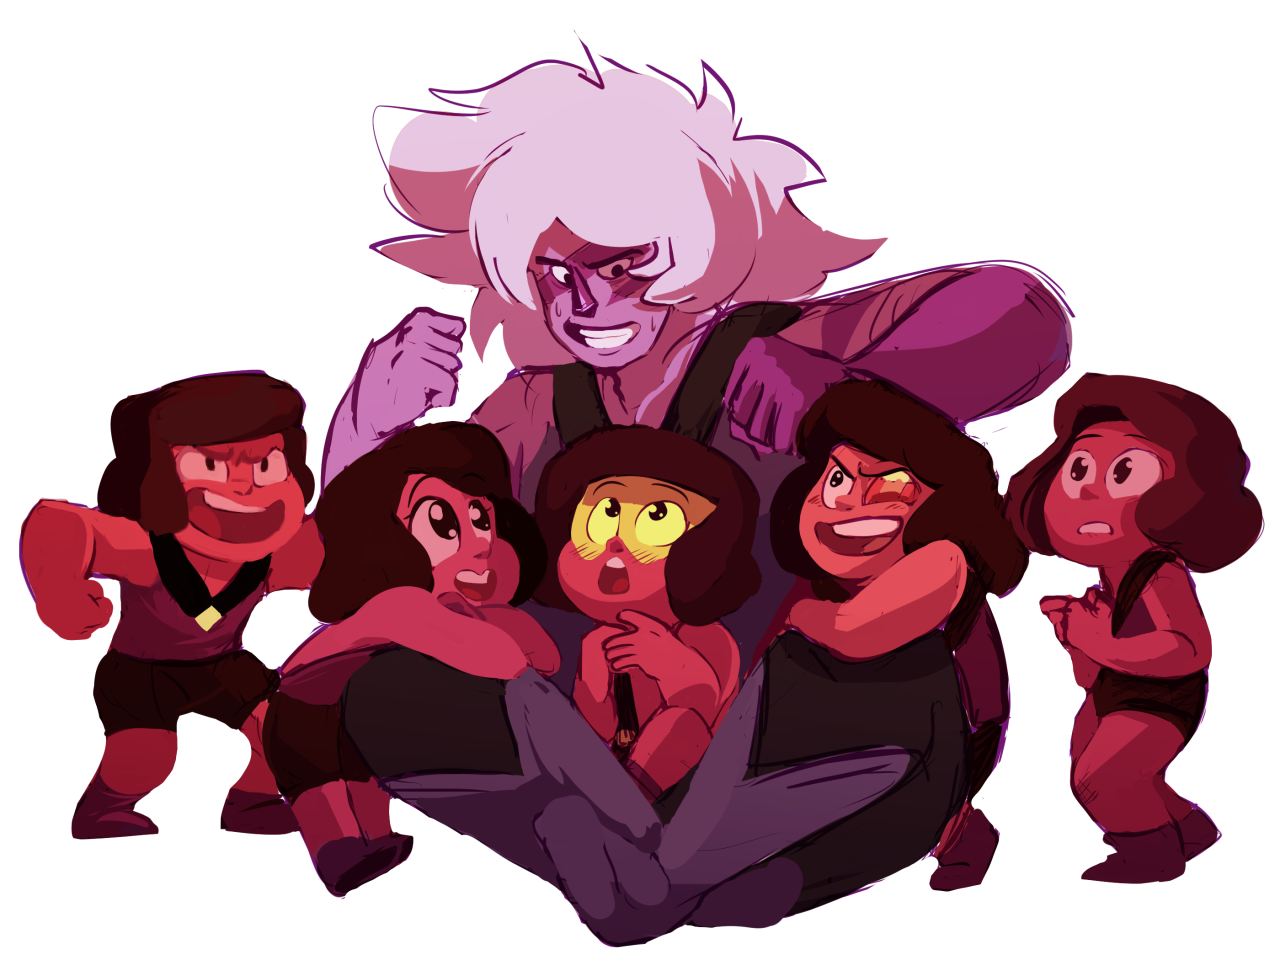 Story time with Good Ol' Jasper, that's her, yep. Sure is Jasper there.